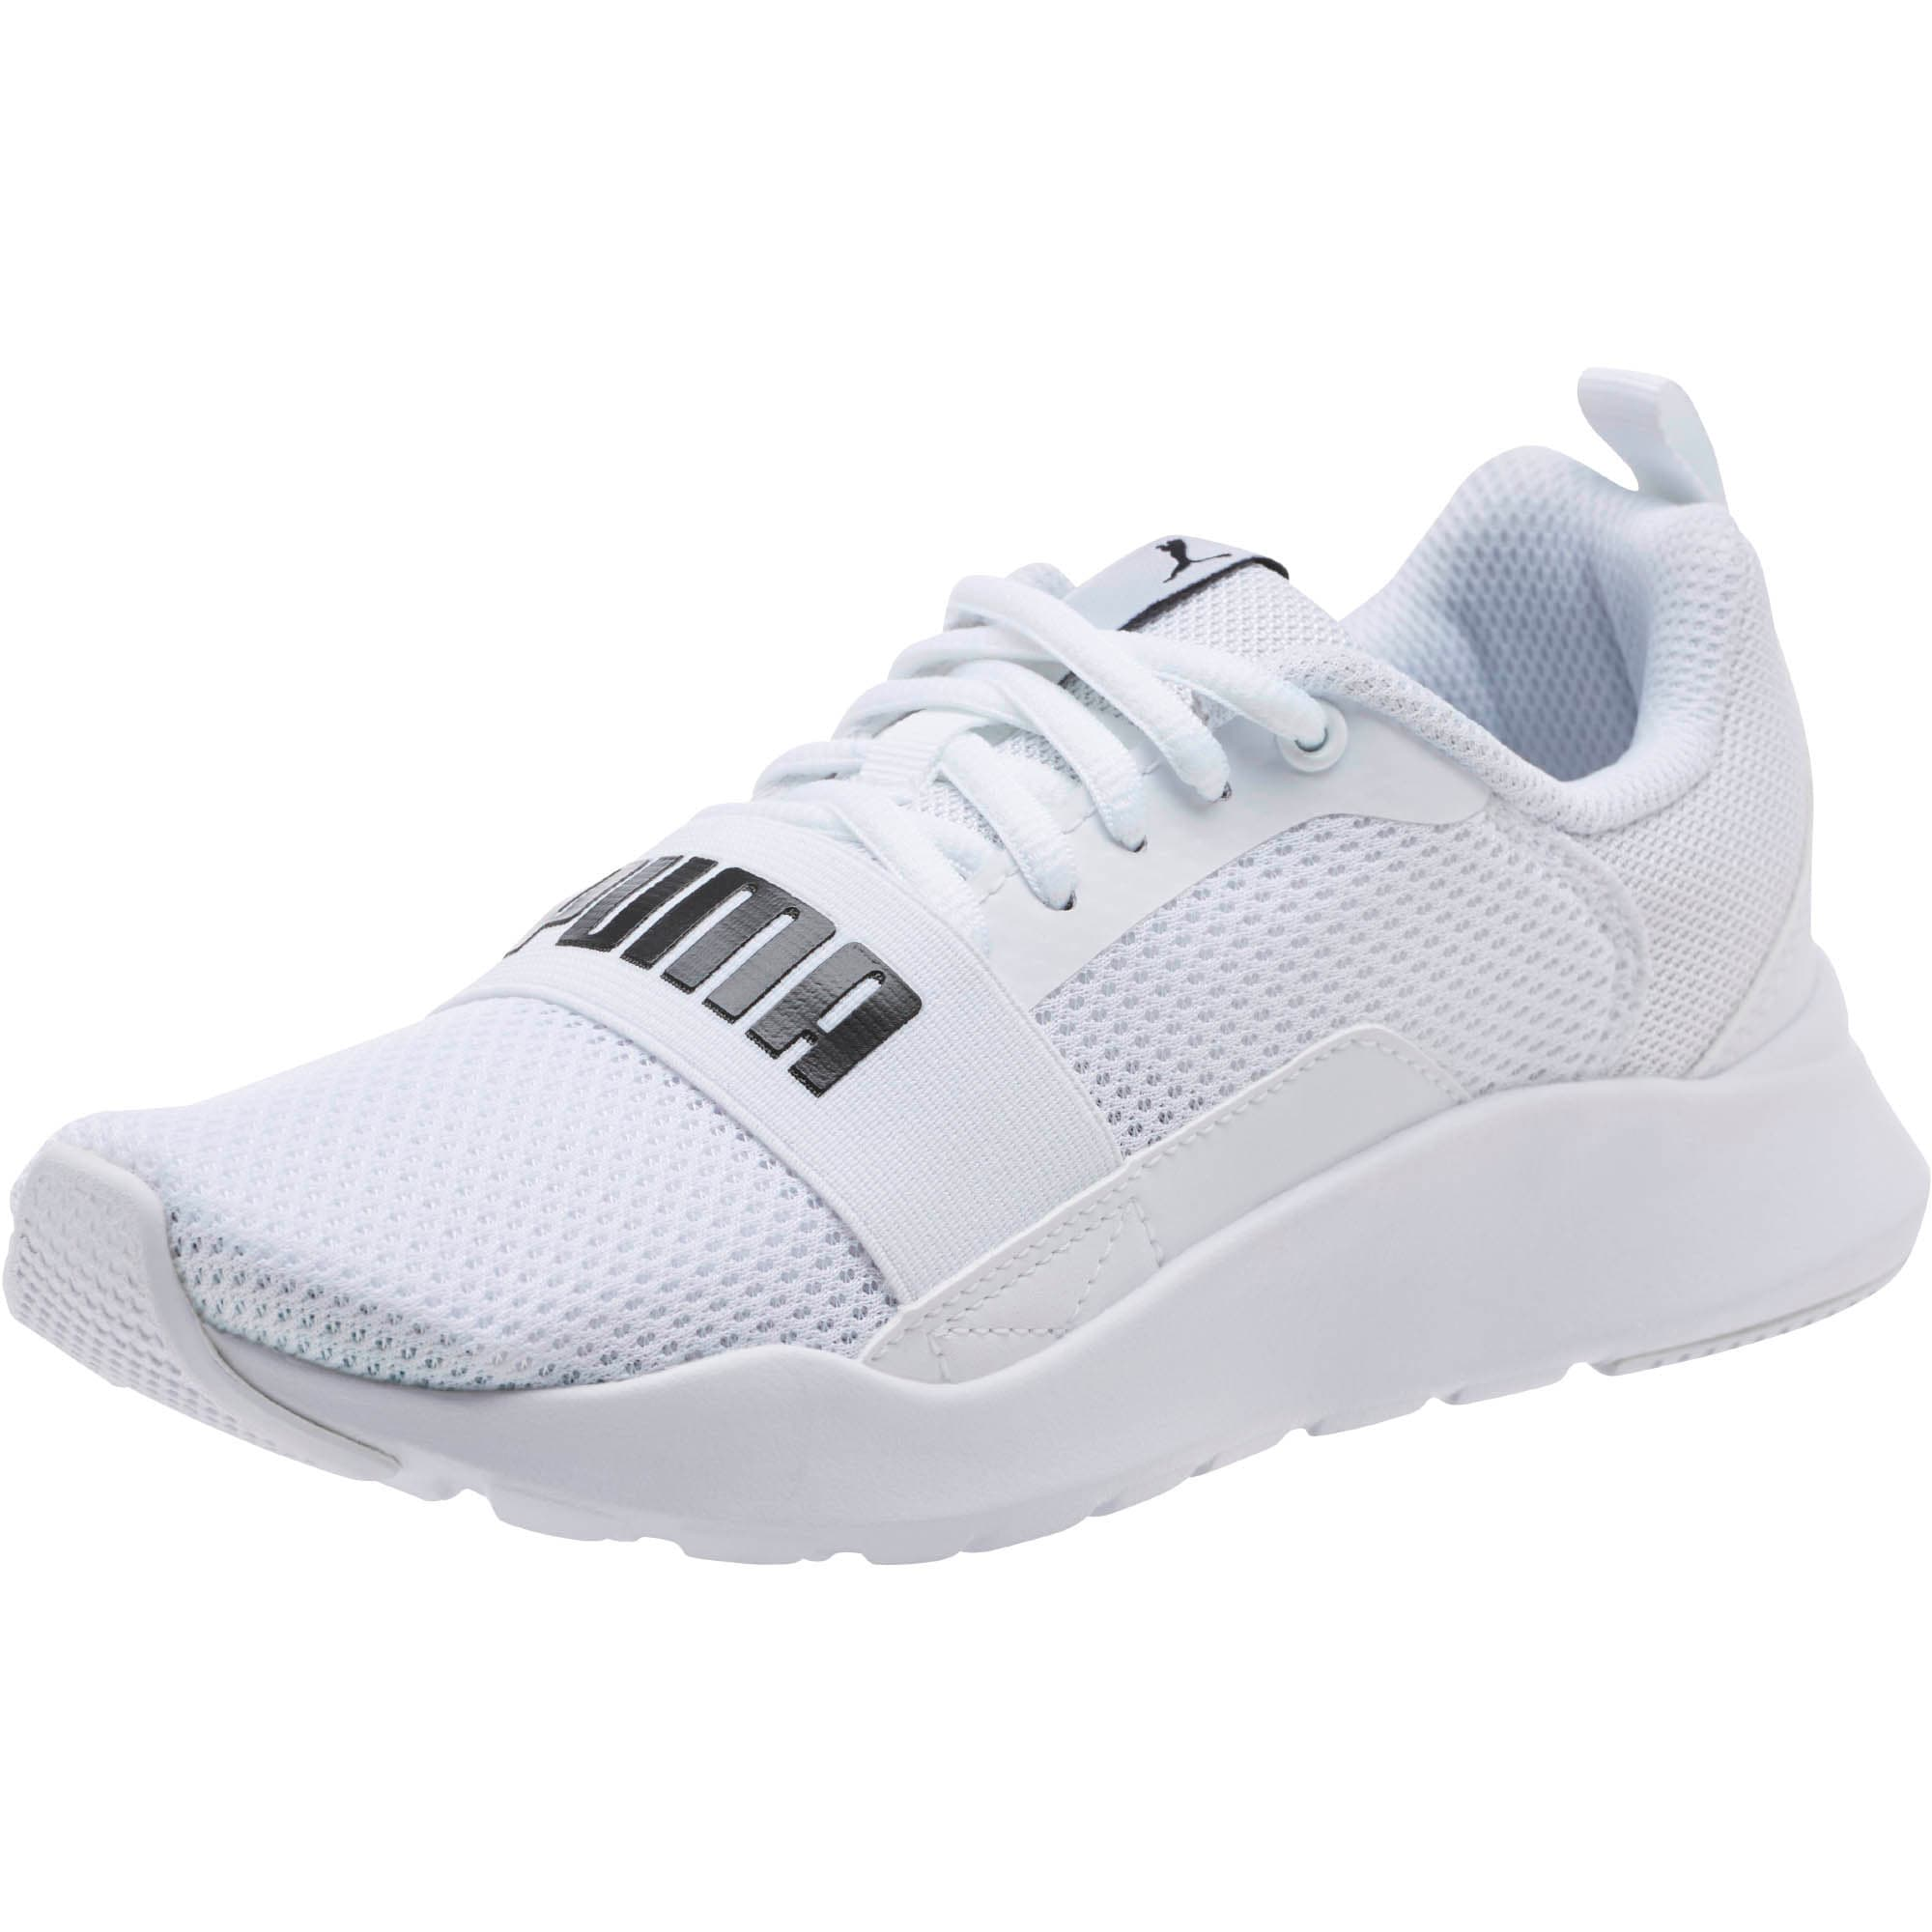 Thumbnail 1 of PUMA Wired Sneakers JR, Puma White-Puma White-White, medium